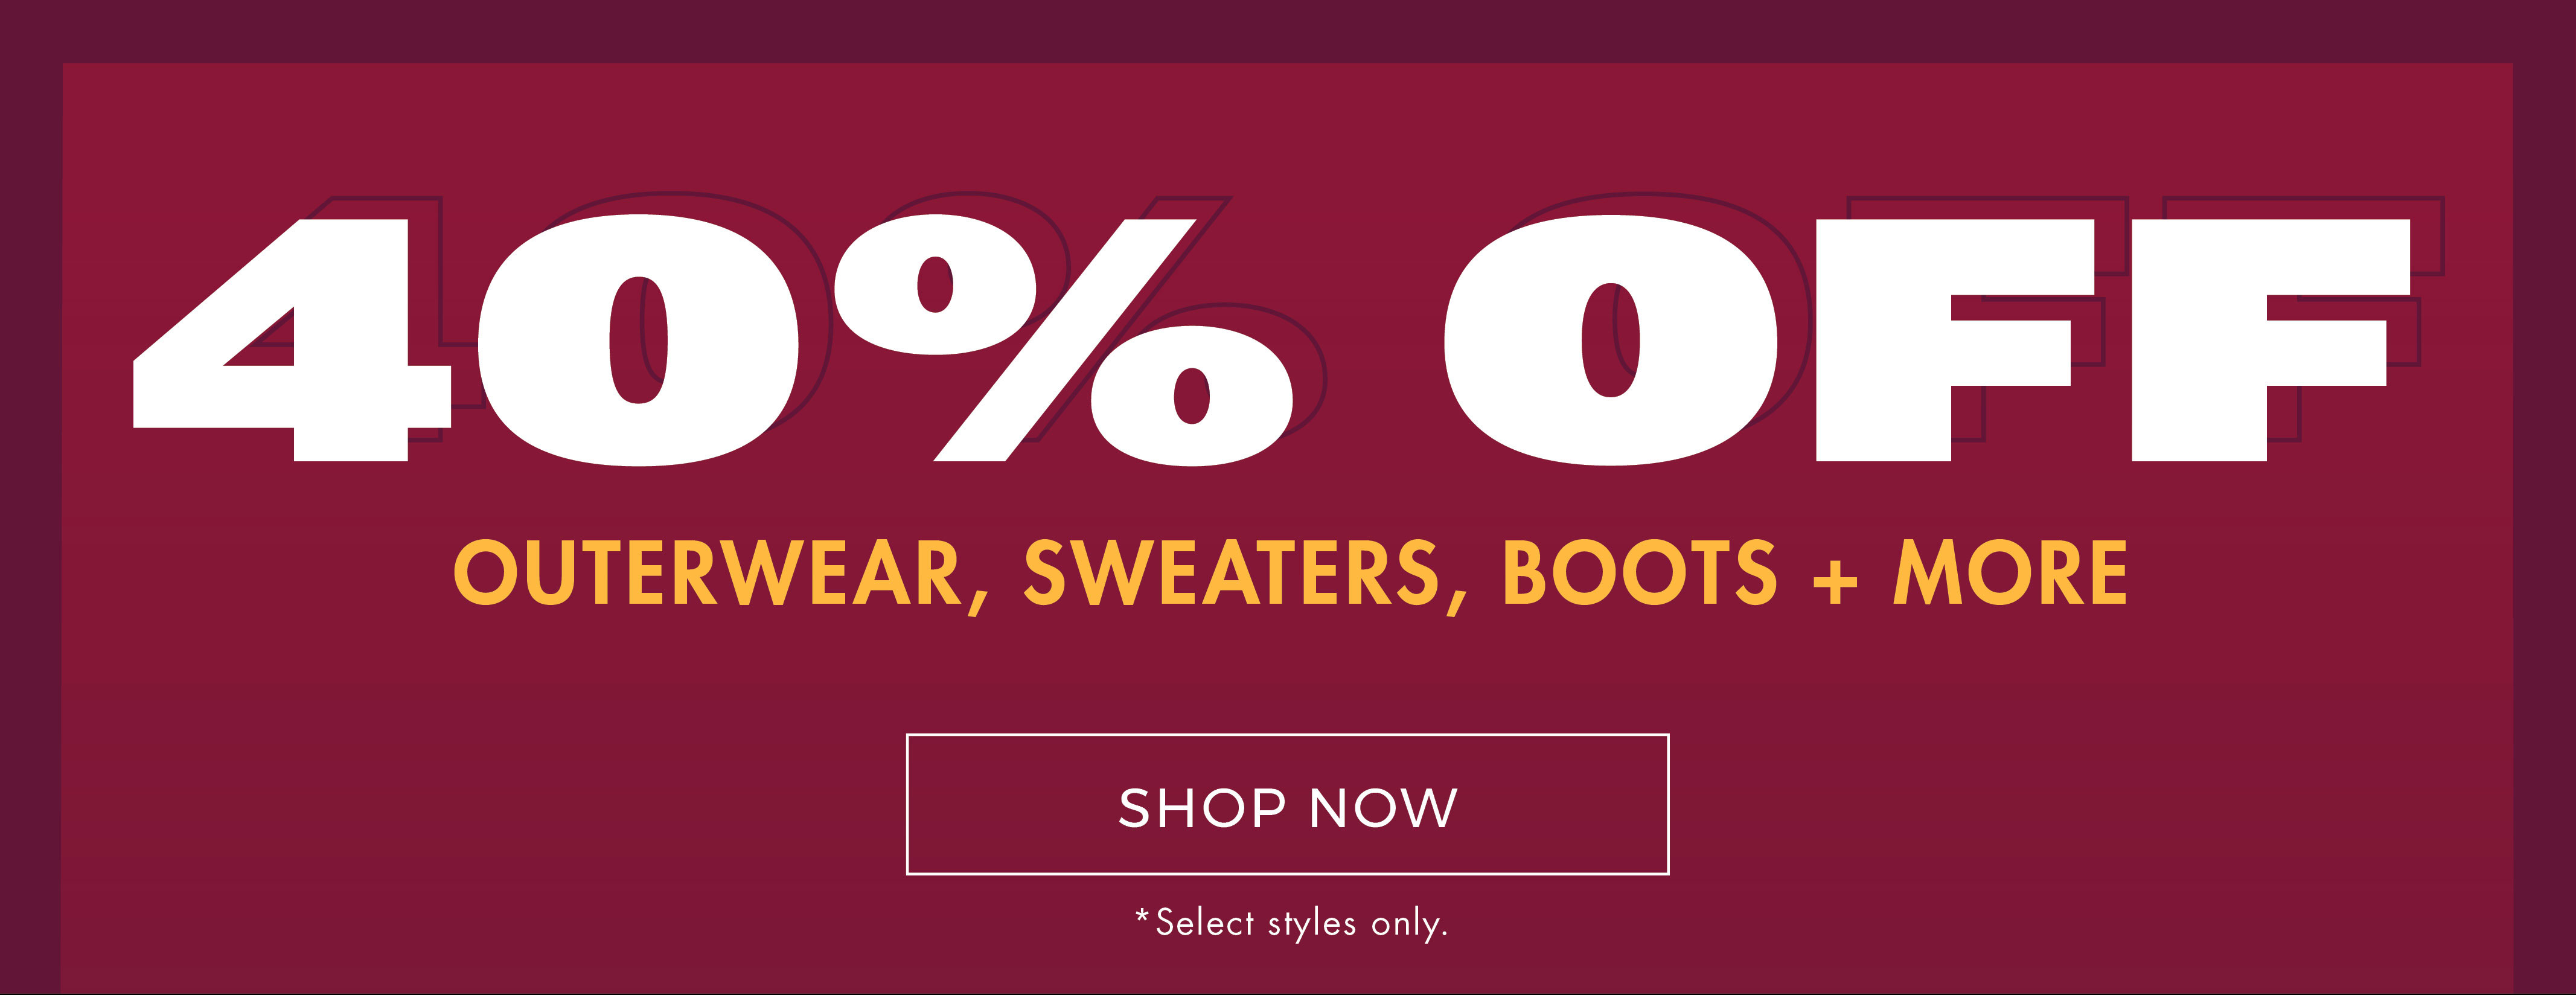 40% off outerwear, sweaters, boots & more* *Select styles only - Shop Now